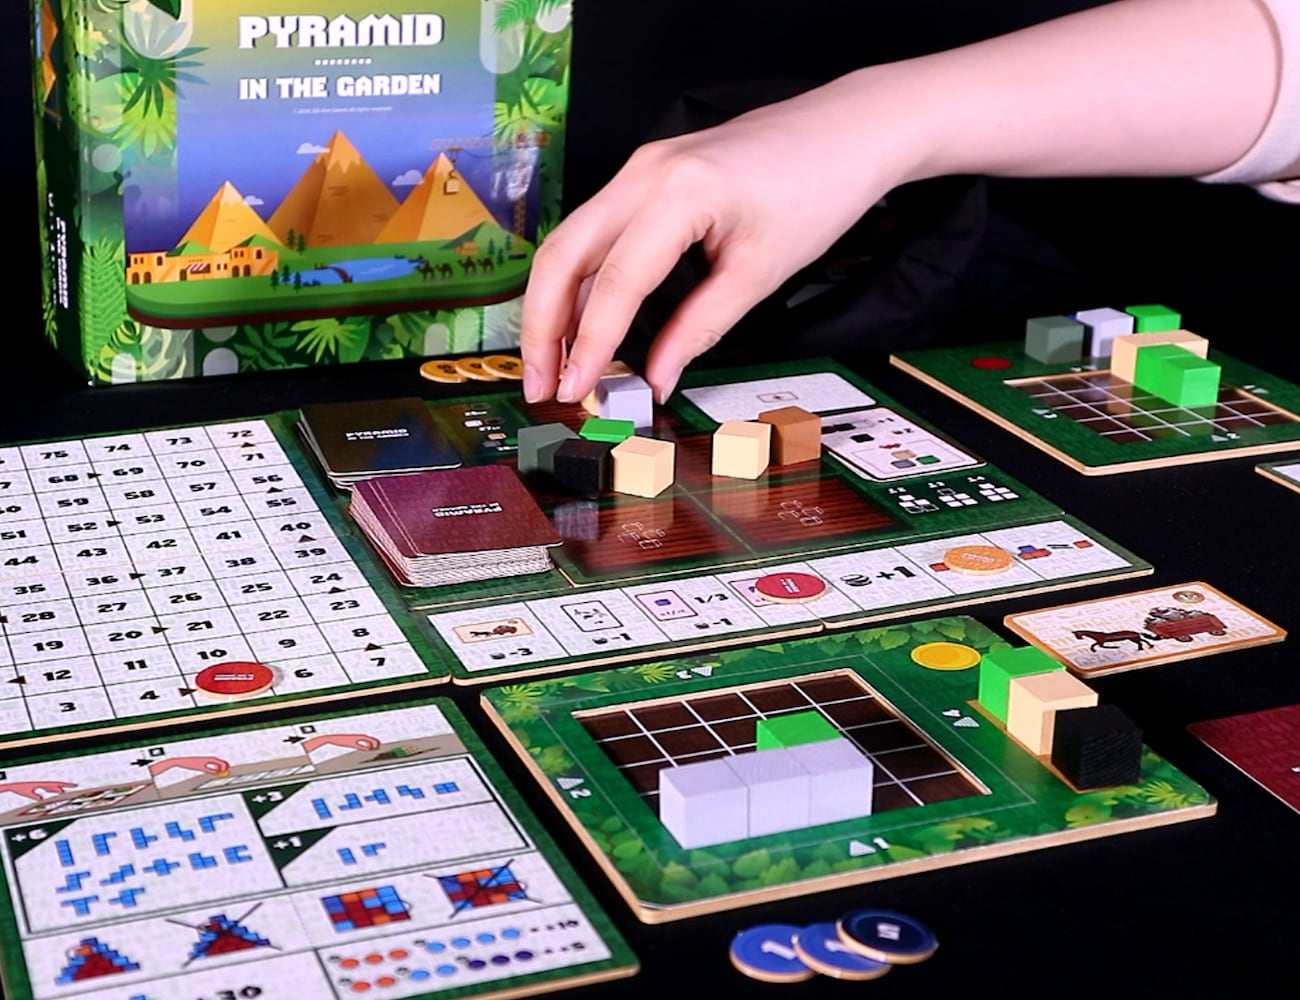 Pyramid in the Garden Pyramid Building Board Game is simple yet challenging